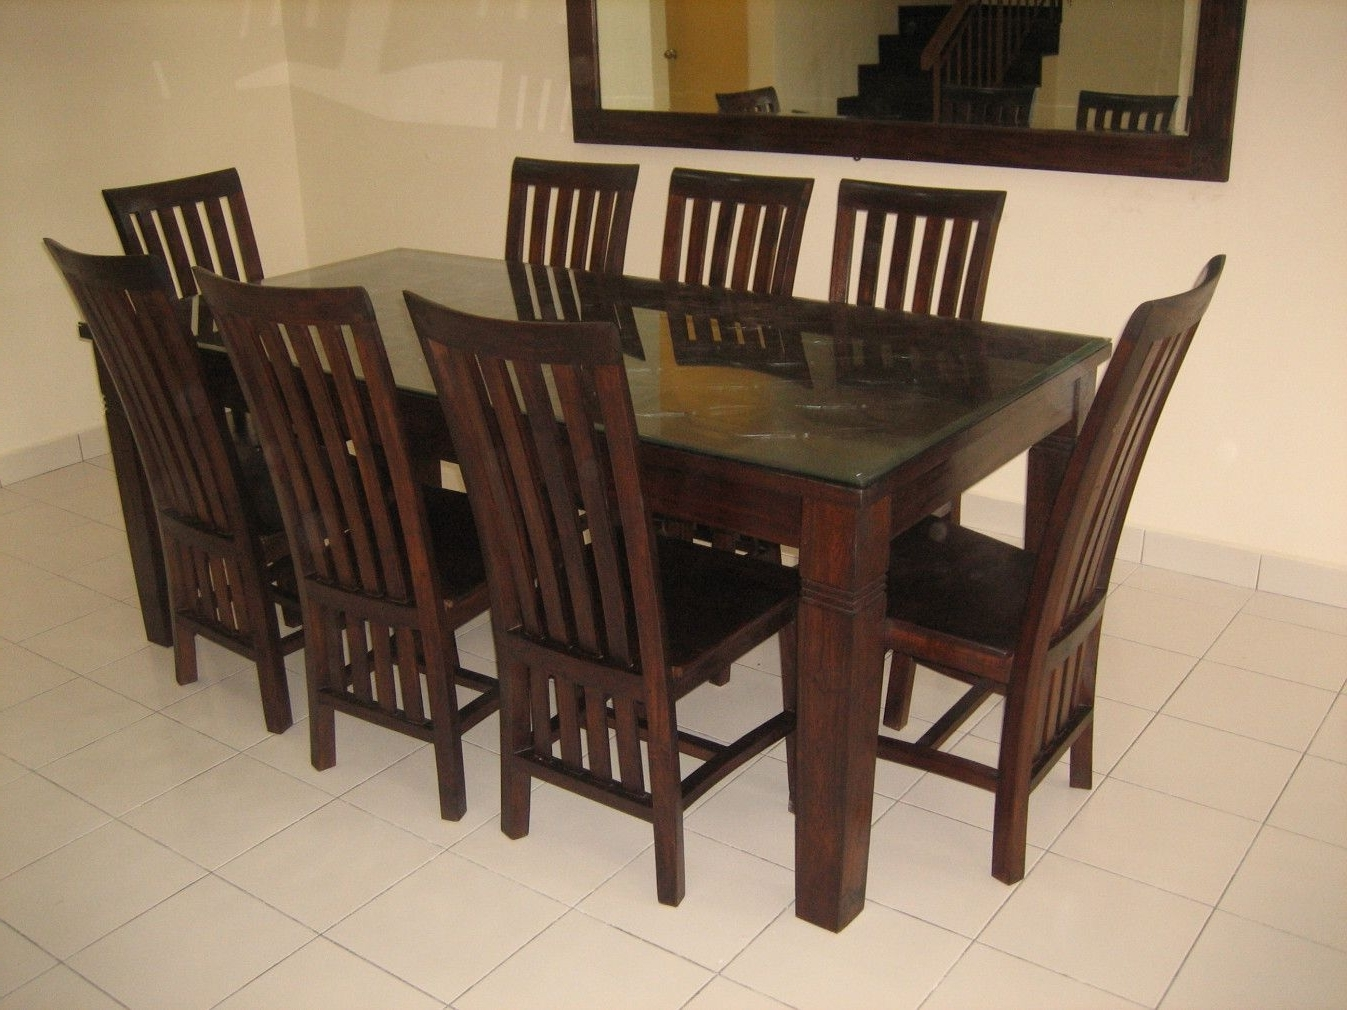 2017 Second Hand Oak Dining Chairs Regarding 55+ Second Hand Oak Dining Table And Chairs – Vintage Modern (View 5 of 25)